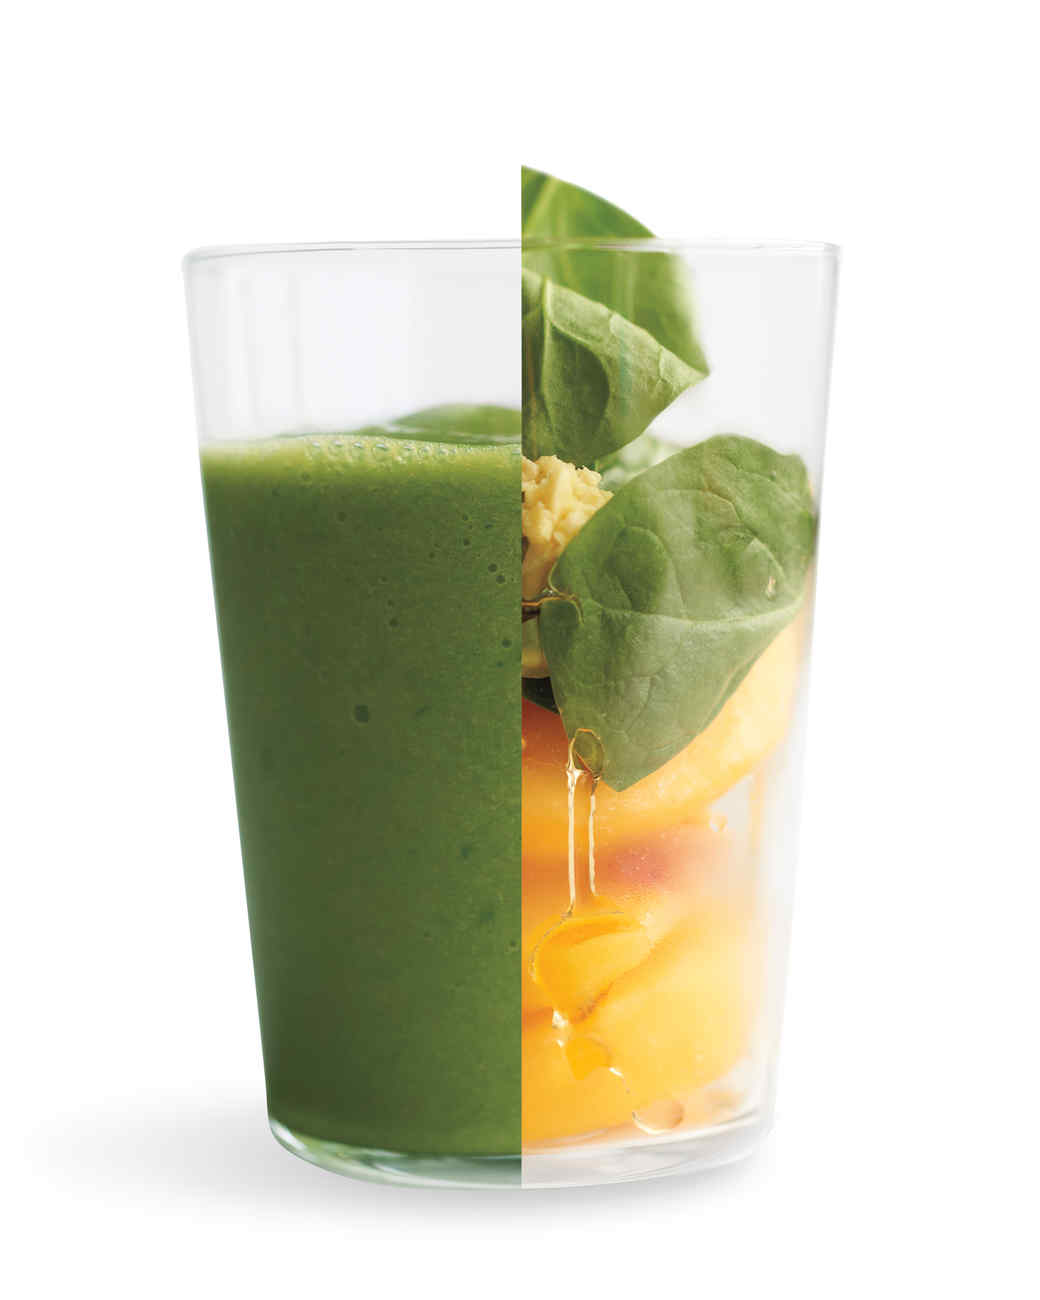 peach-spinach-017-comp-med109451.jpg